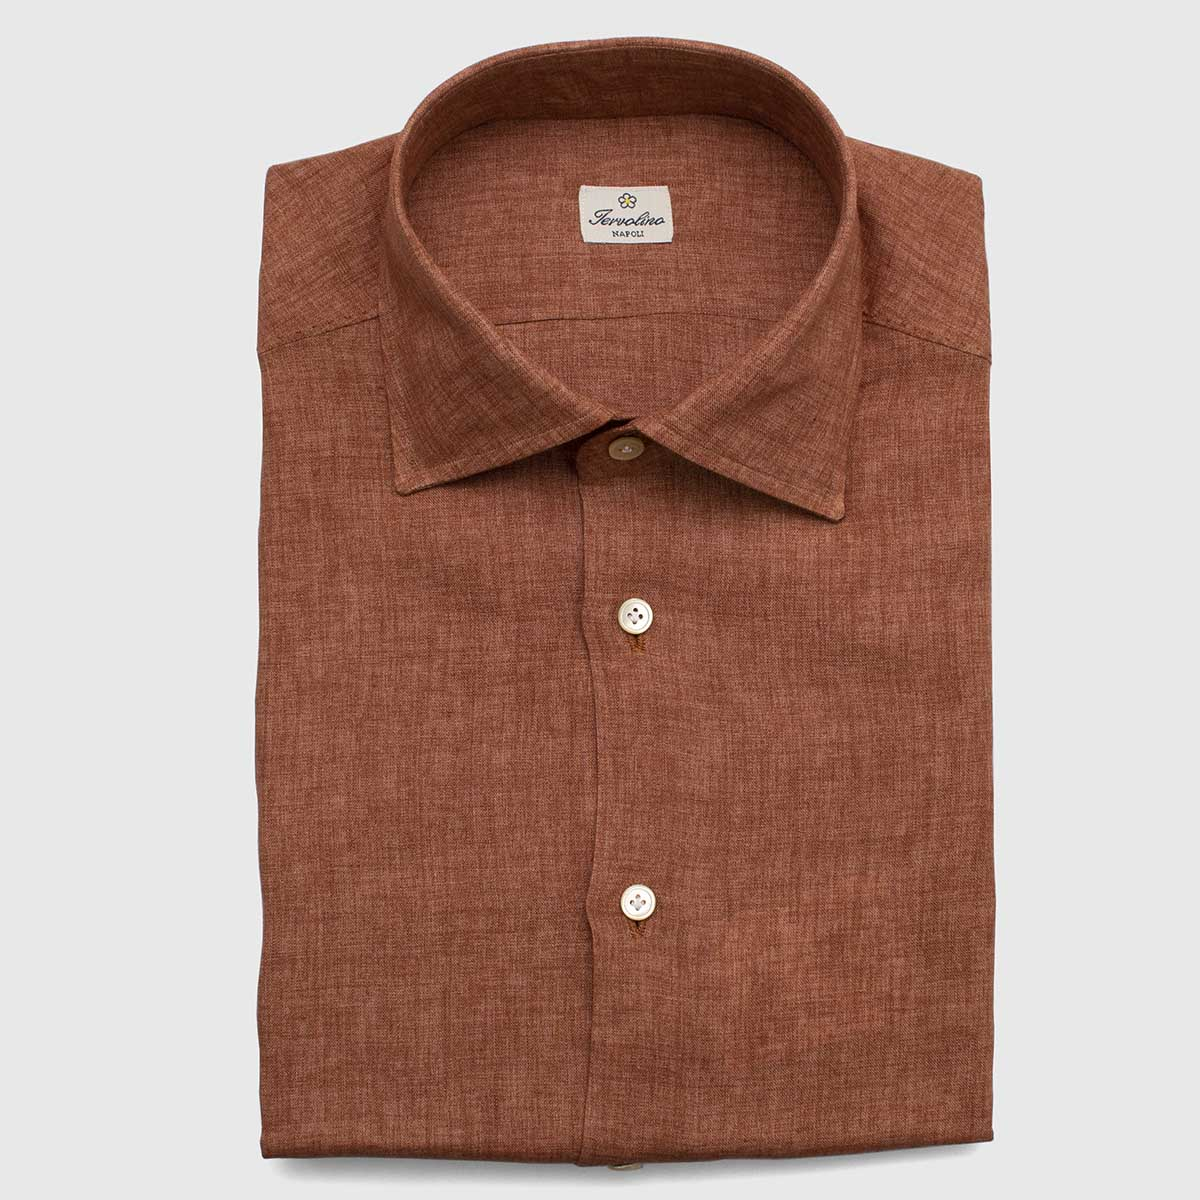 100% Tobacco Linen shirt made with 12 steps by hand